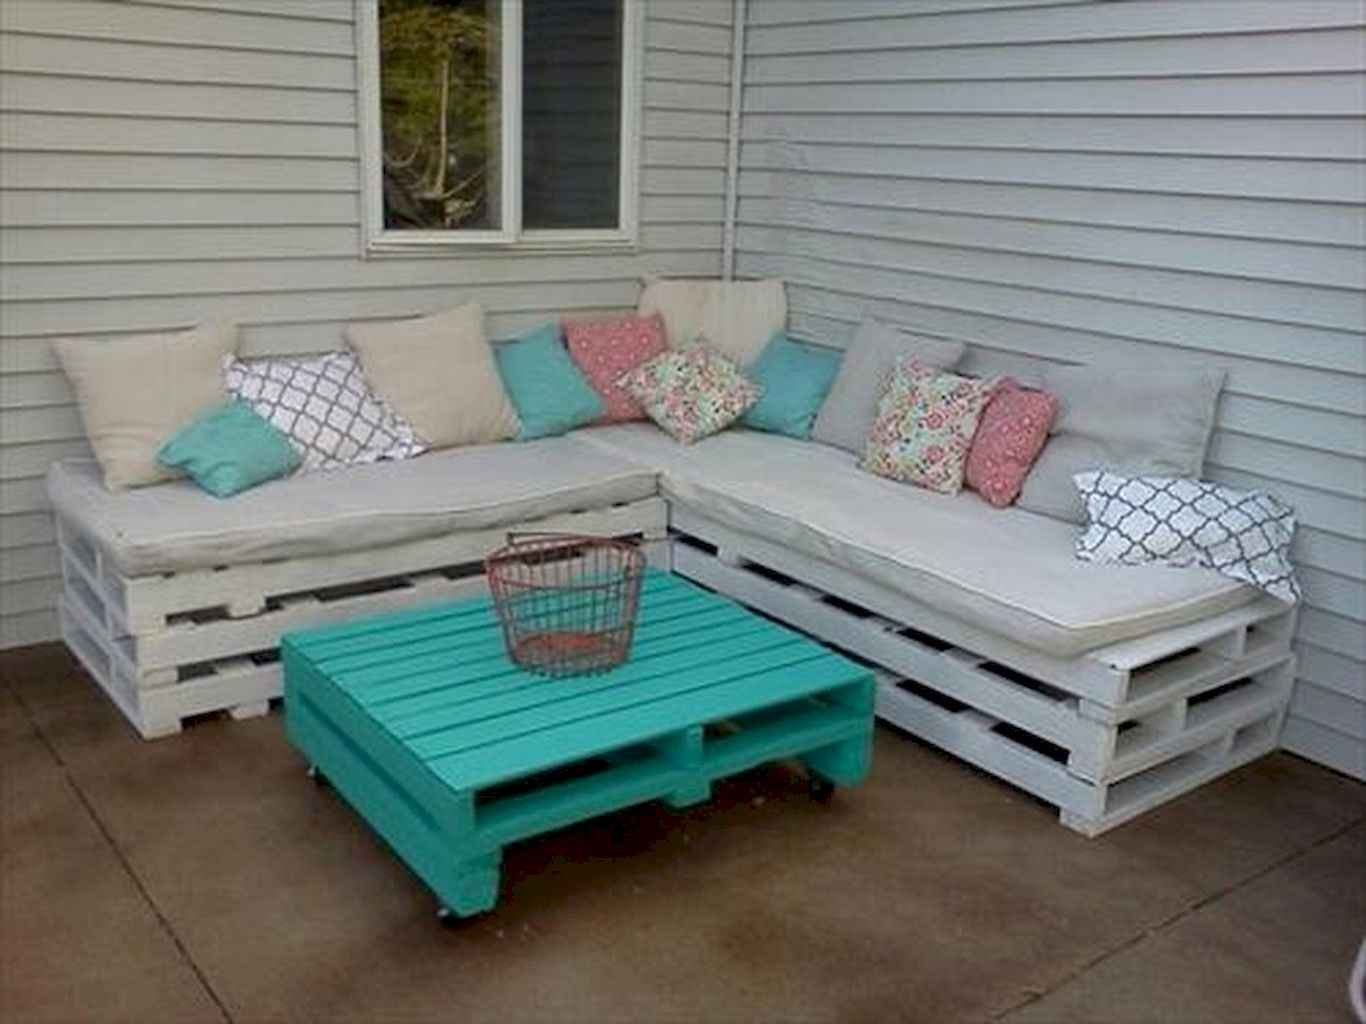 Cleverly diy porch patio decorating ideas (2)